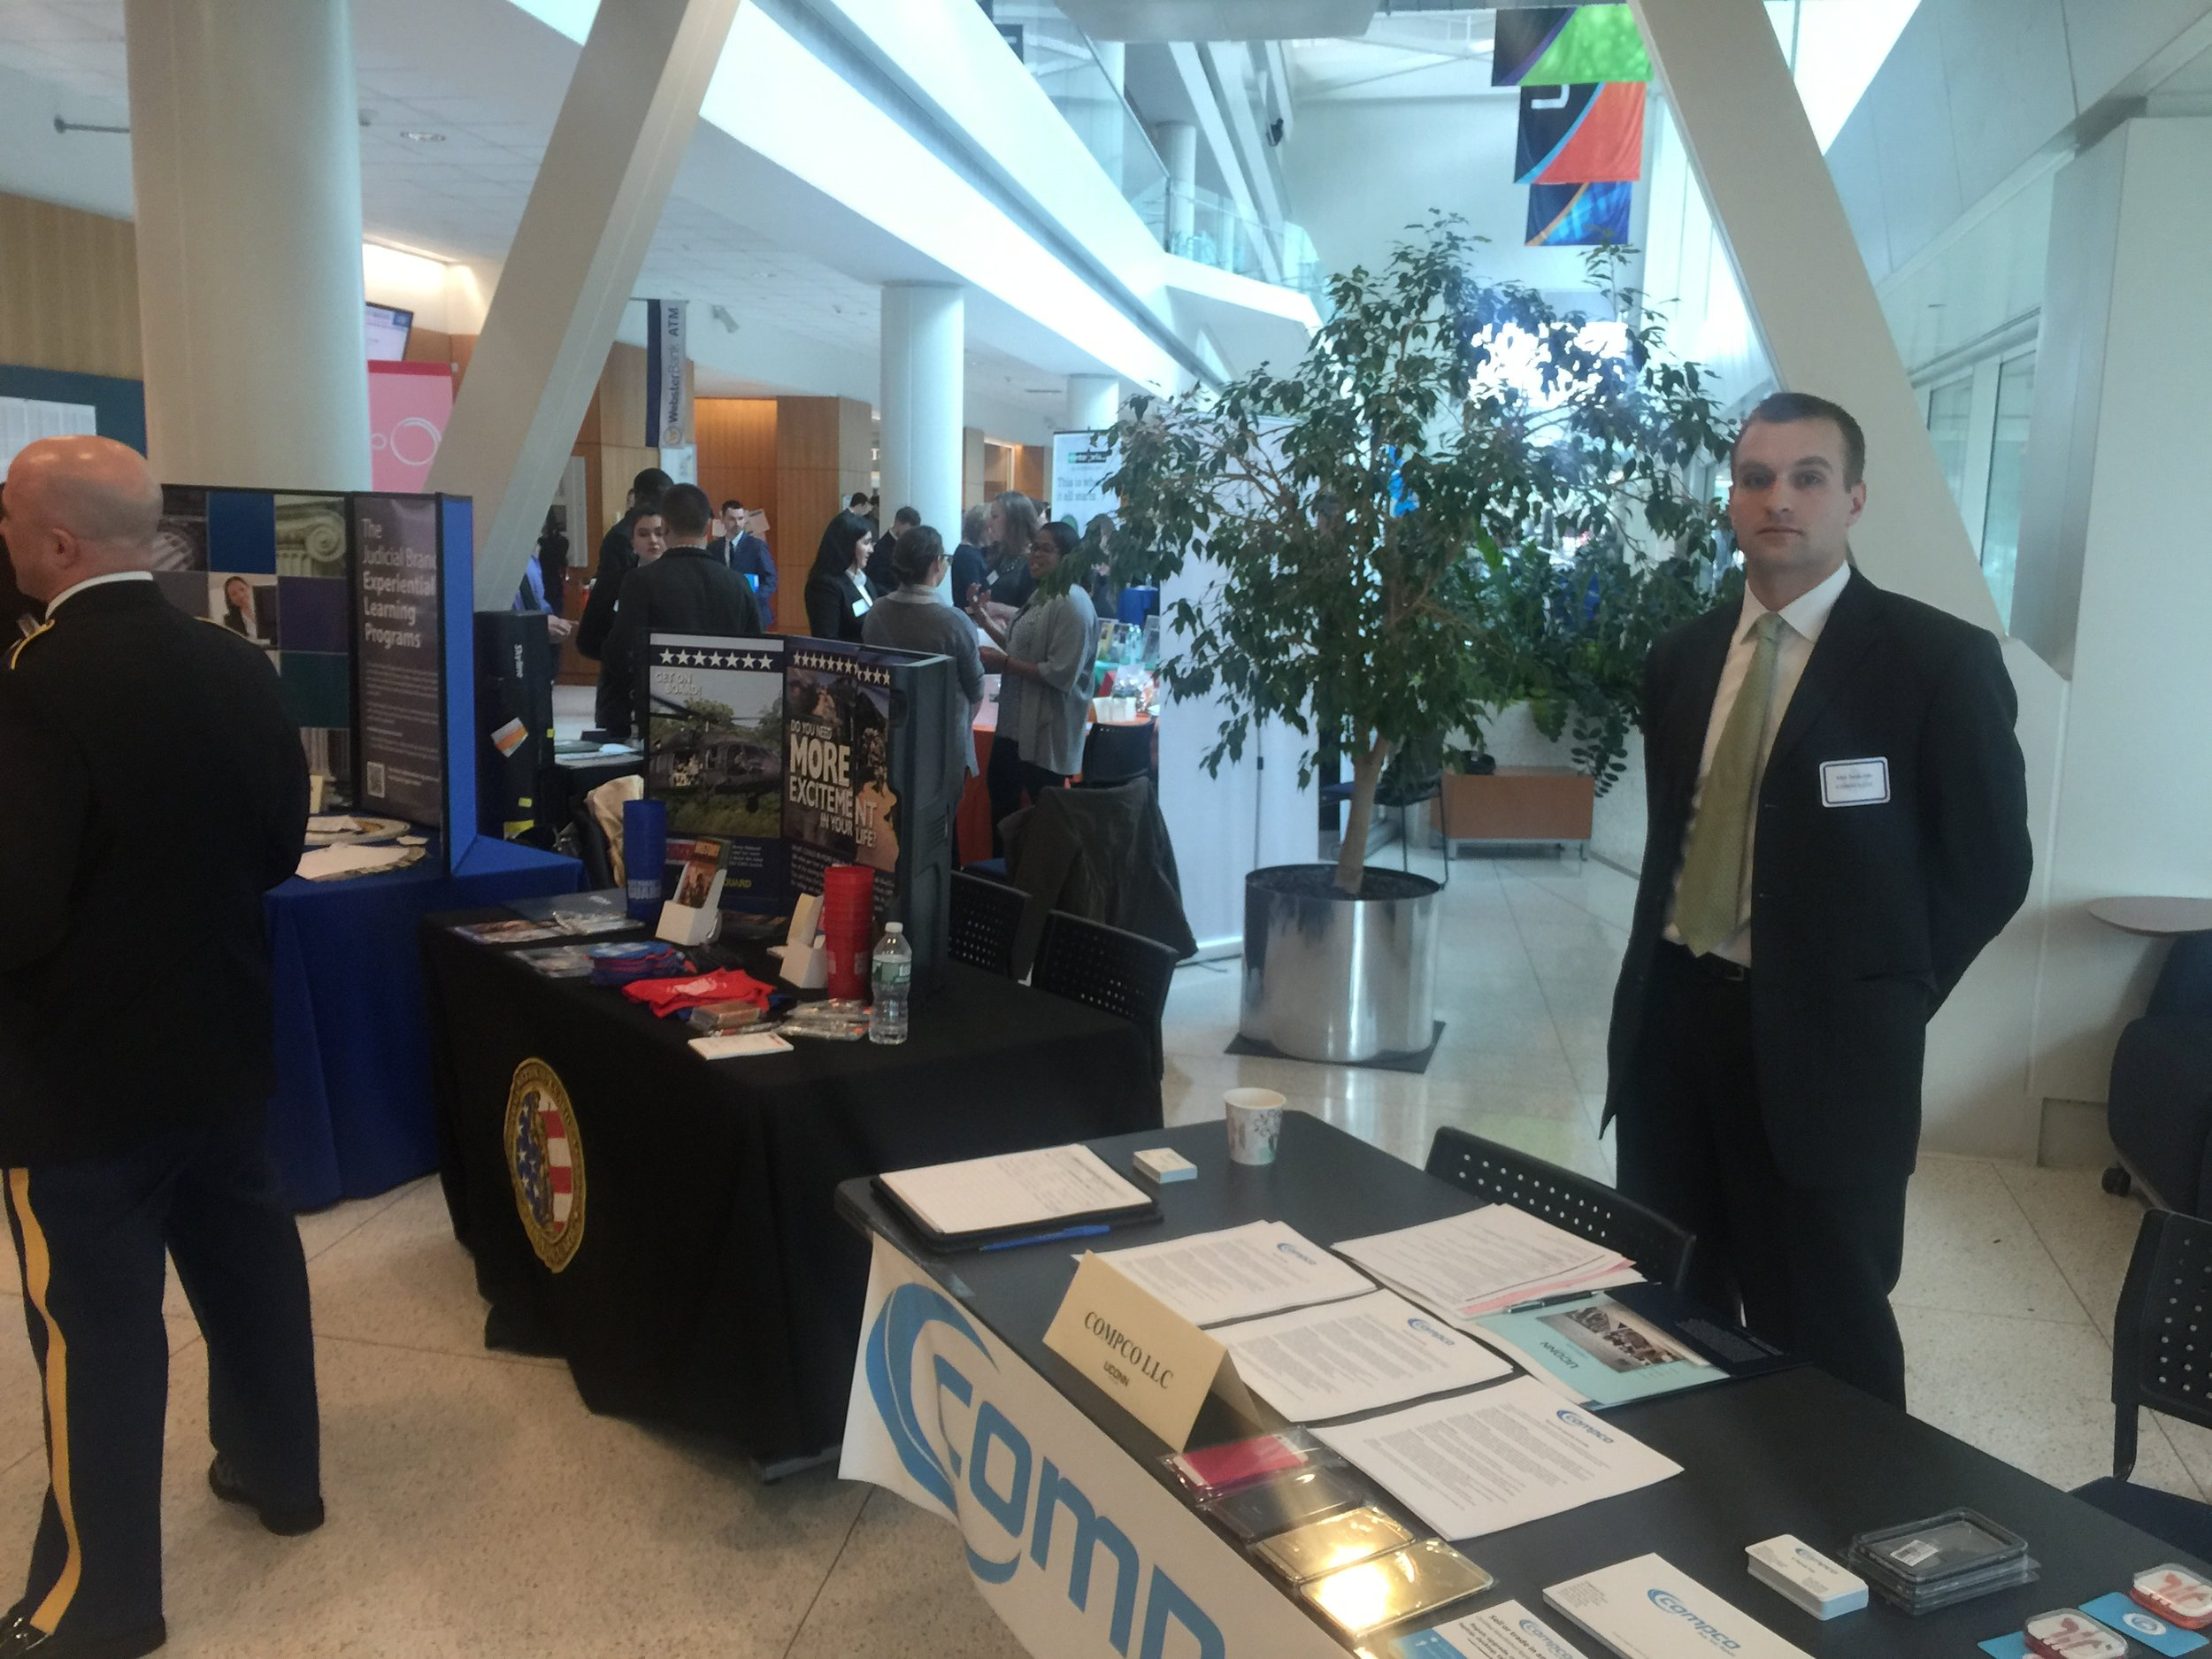 Compco's first career fair at UConn Stamford